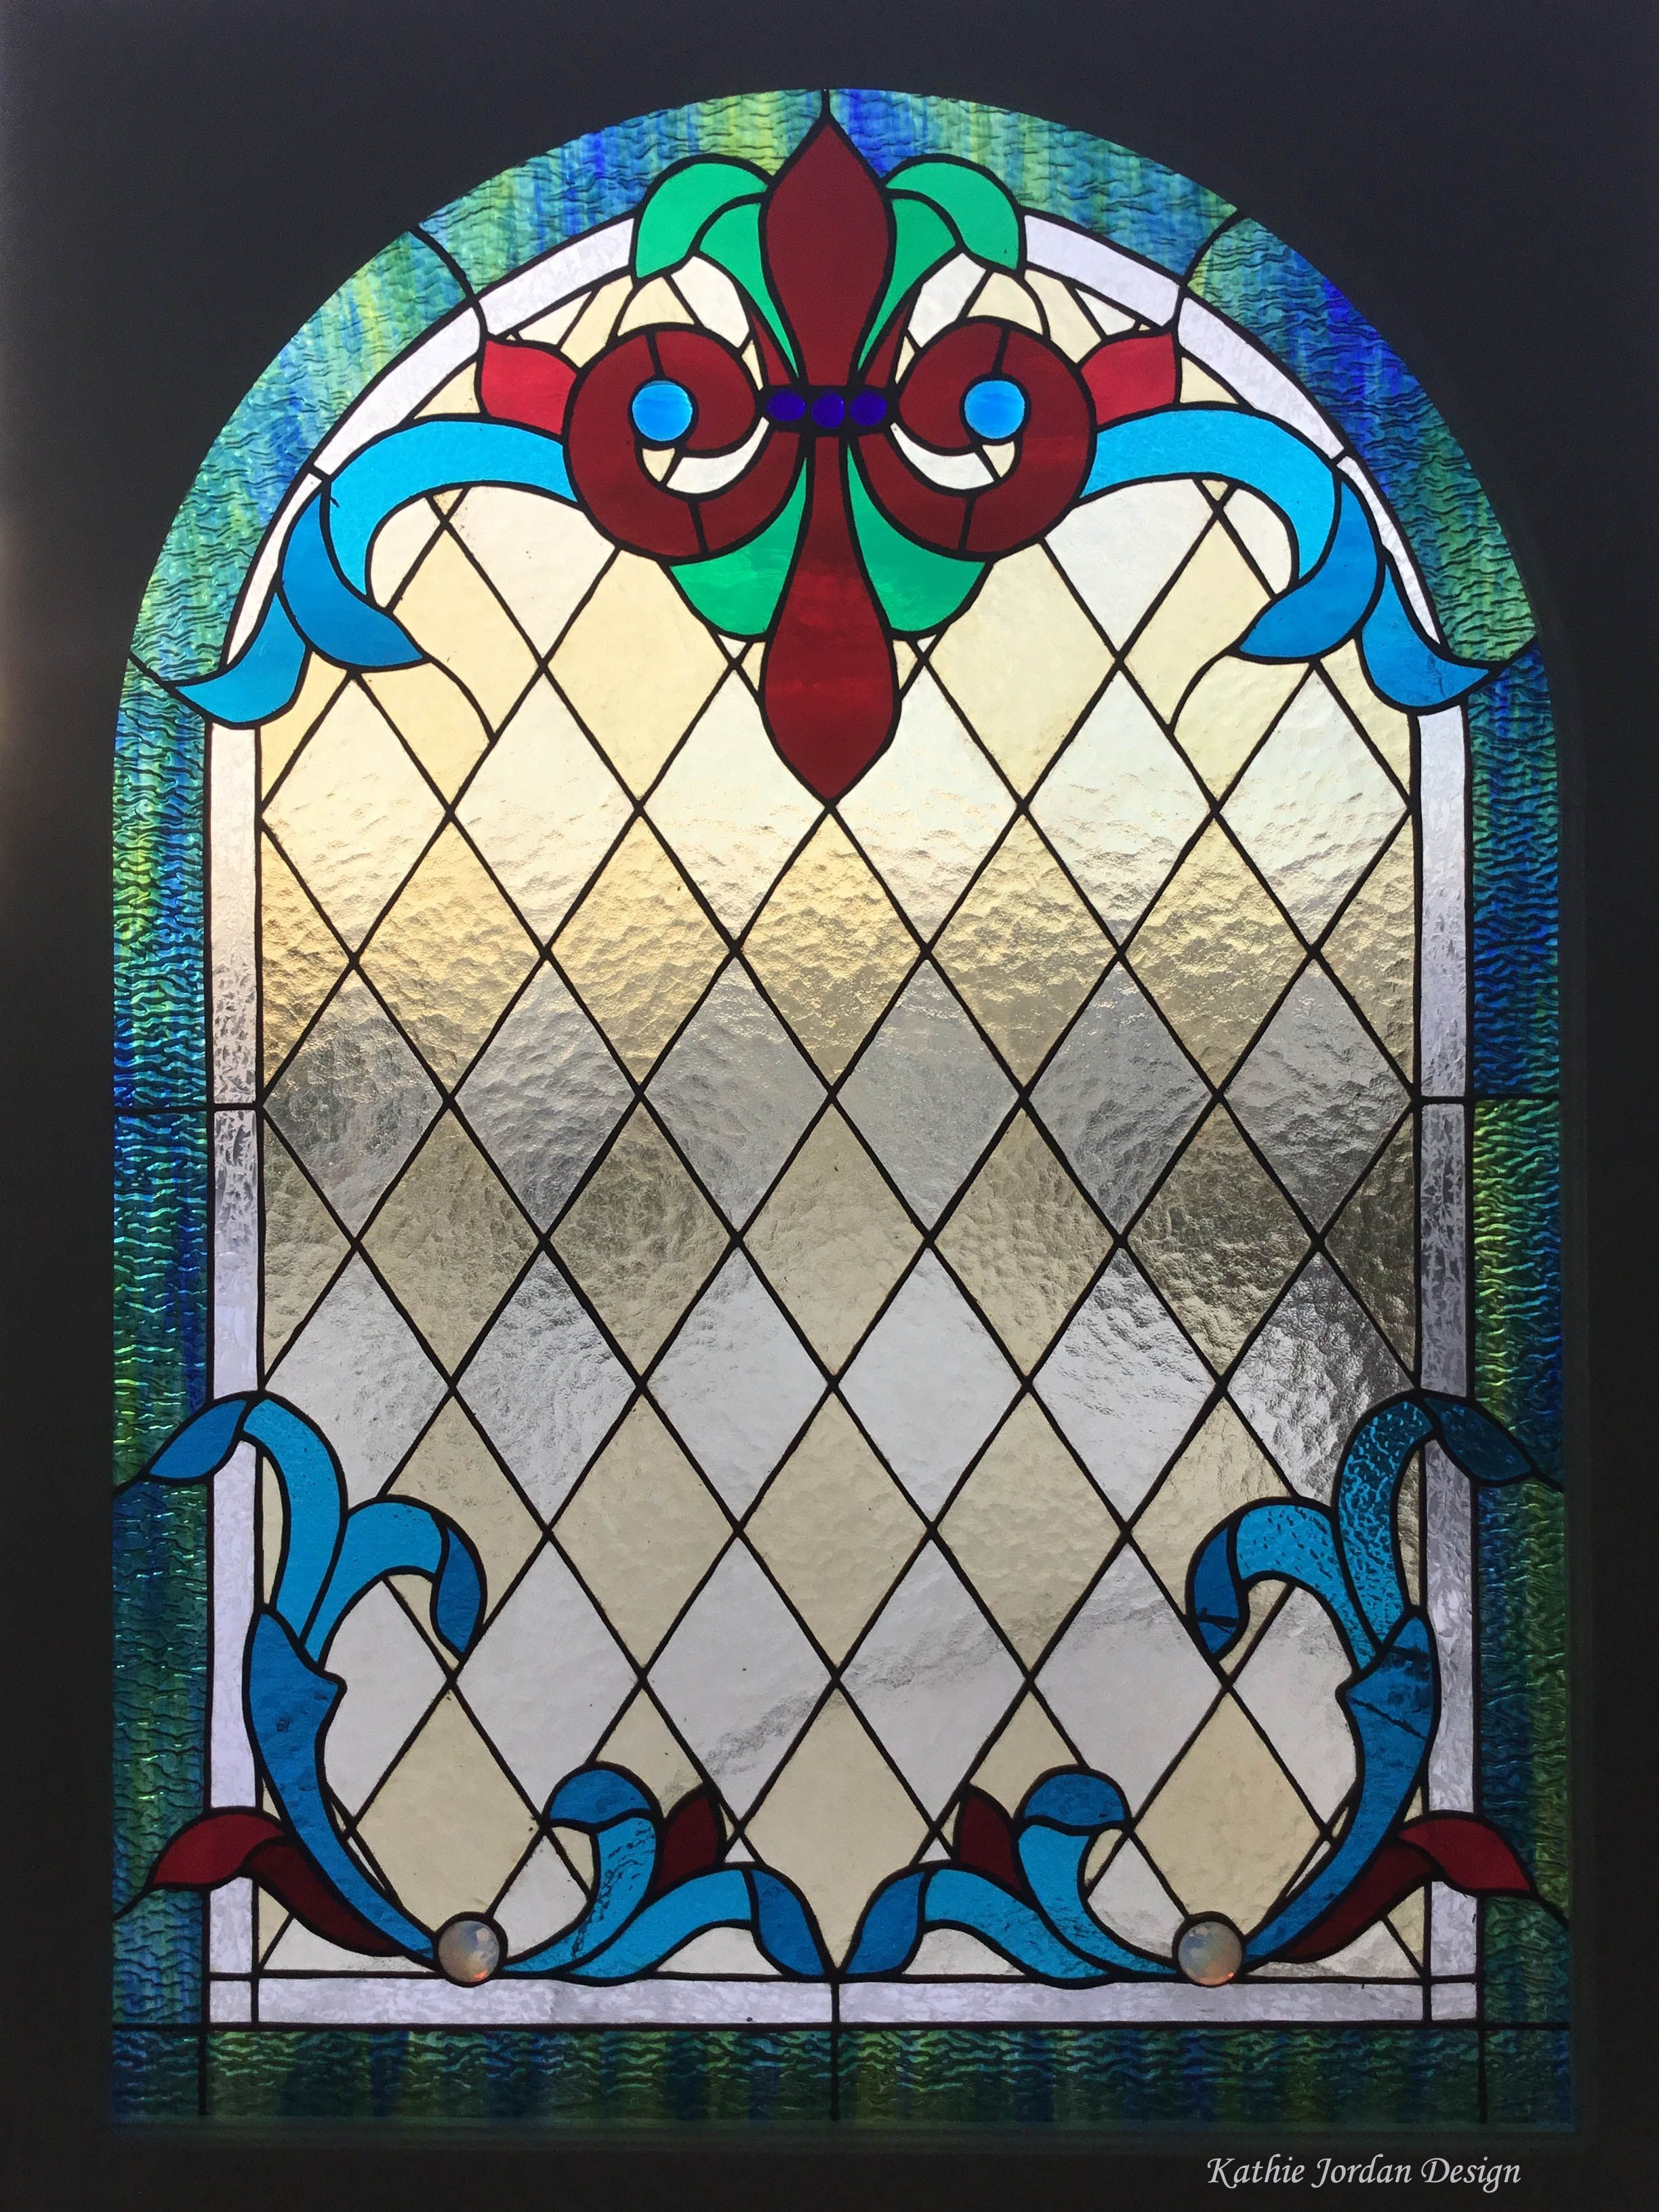 Custom stained glass window made by Kathie Jordan Design for a stairway window in Kitchener ON, Canada #stainedglass #glass #archtop #arch #top #curvedwindow #tiffanywindow #kwawesome #gridwork #fleurdelis